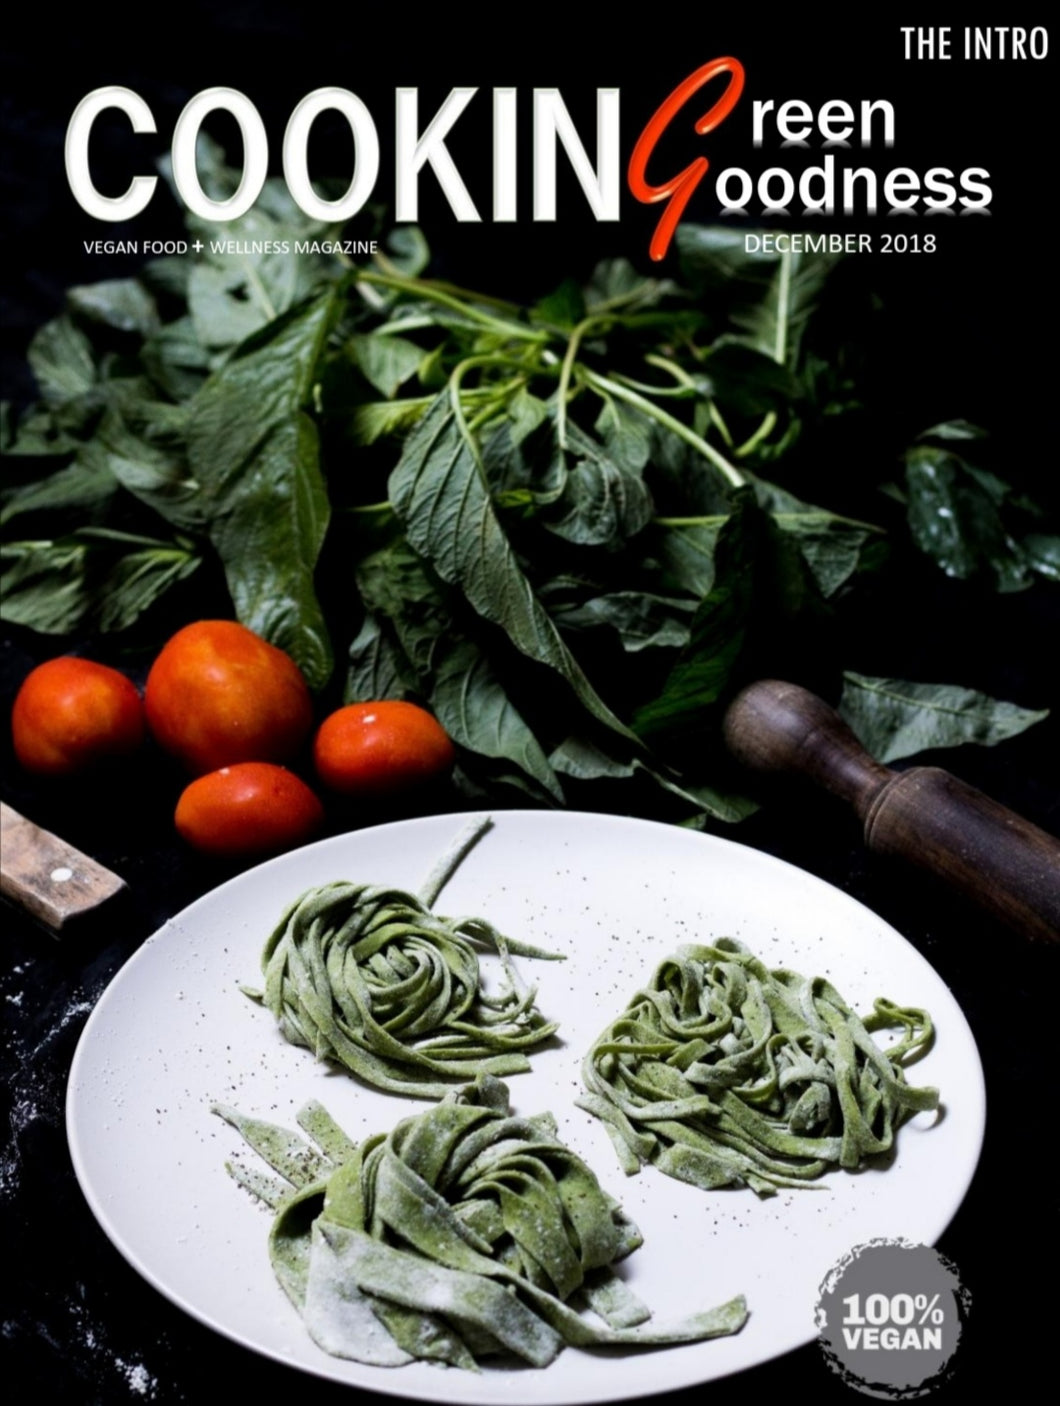 Each purchase allows you to read Cooking Green Goodness Magazine | The Intro Issue on issuu.com anytime. It does not include a printed copy of the magazine. Read on your desktop, tablet or mobile devices.